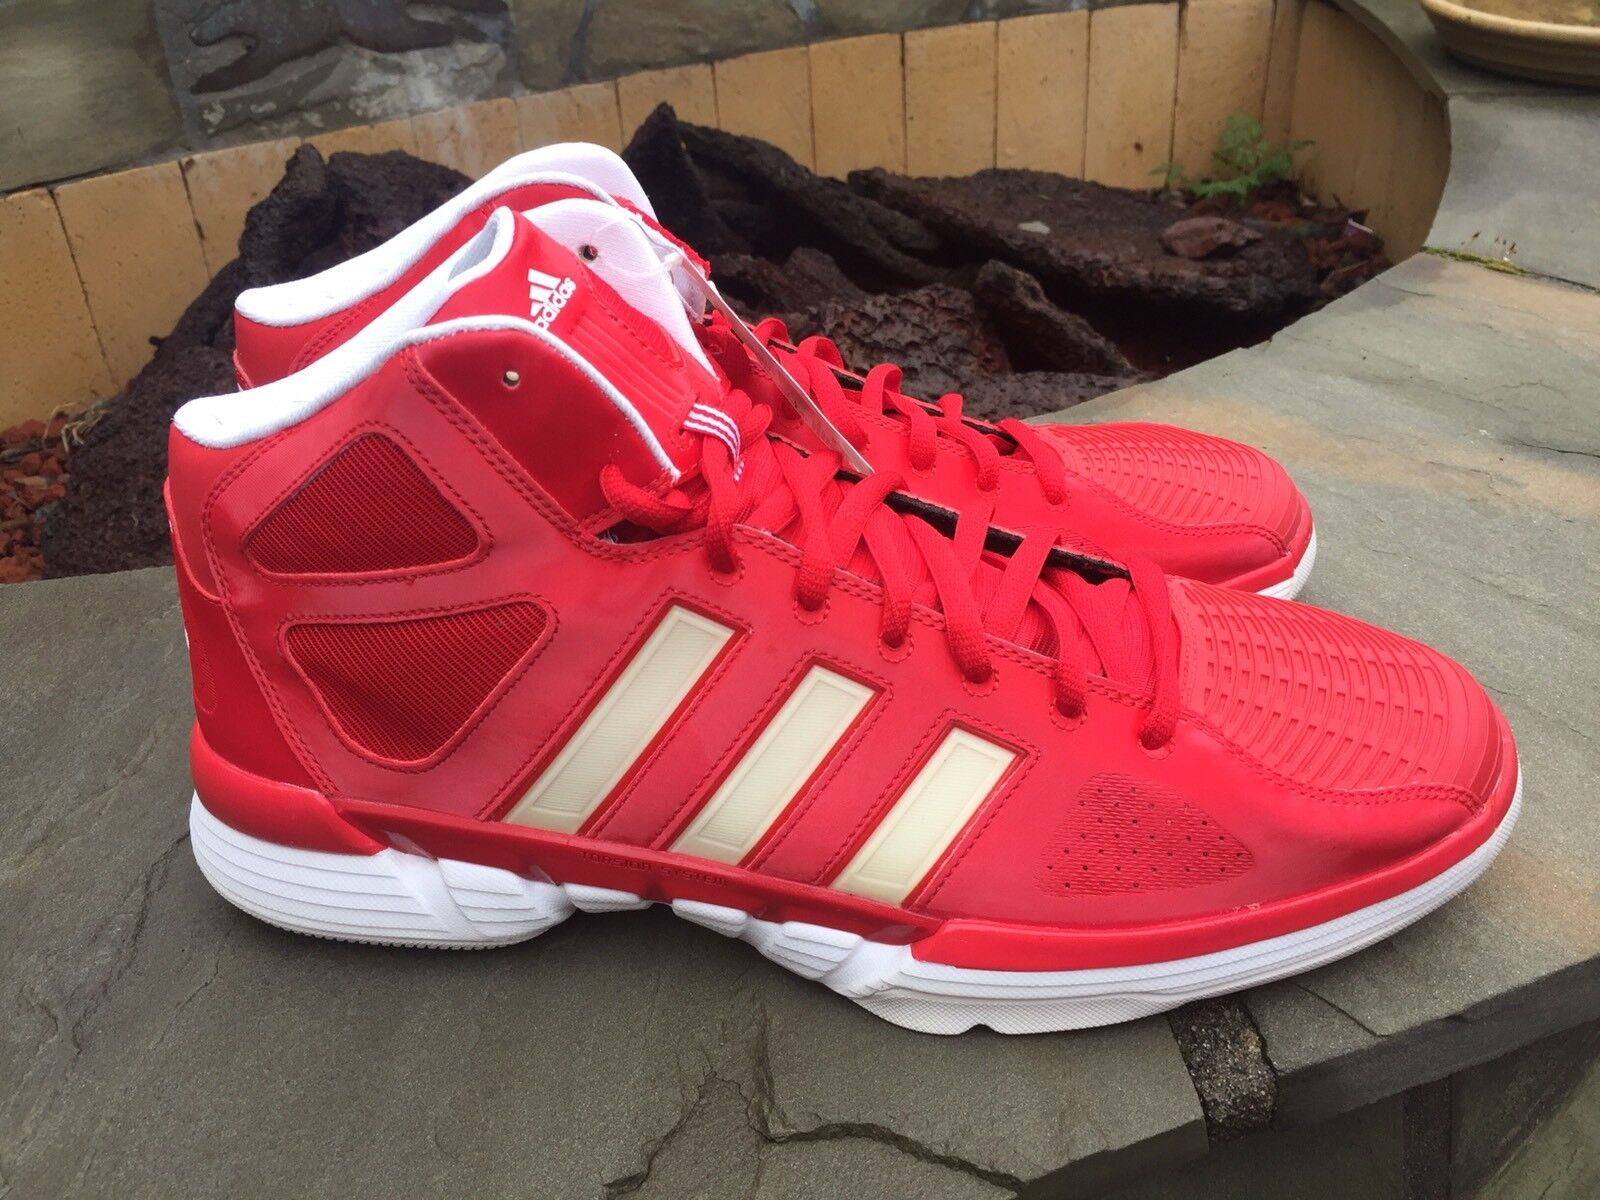 NWT Men's Adidas Basketball AS SMU PRO MODEL 0 RED and White Comfortable Cheap women's shoes women's shoes